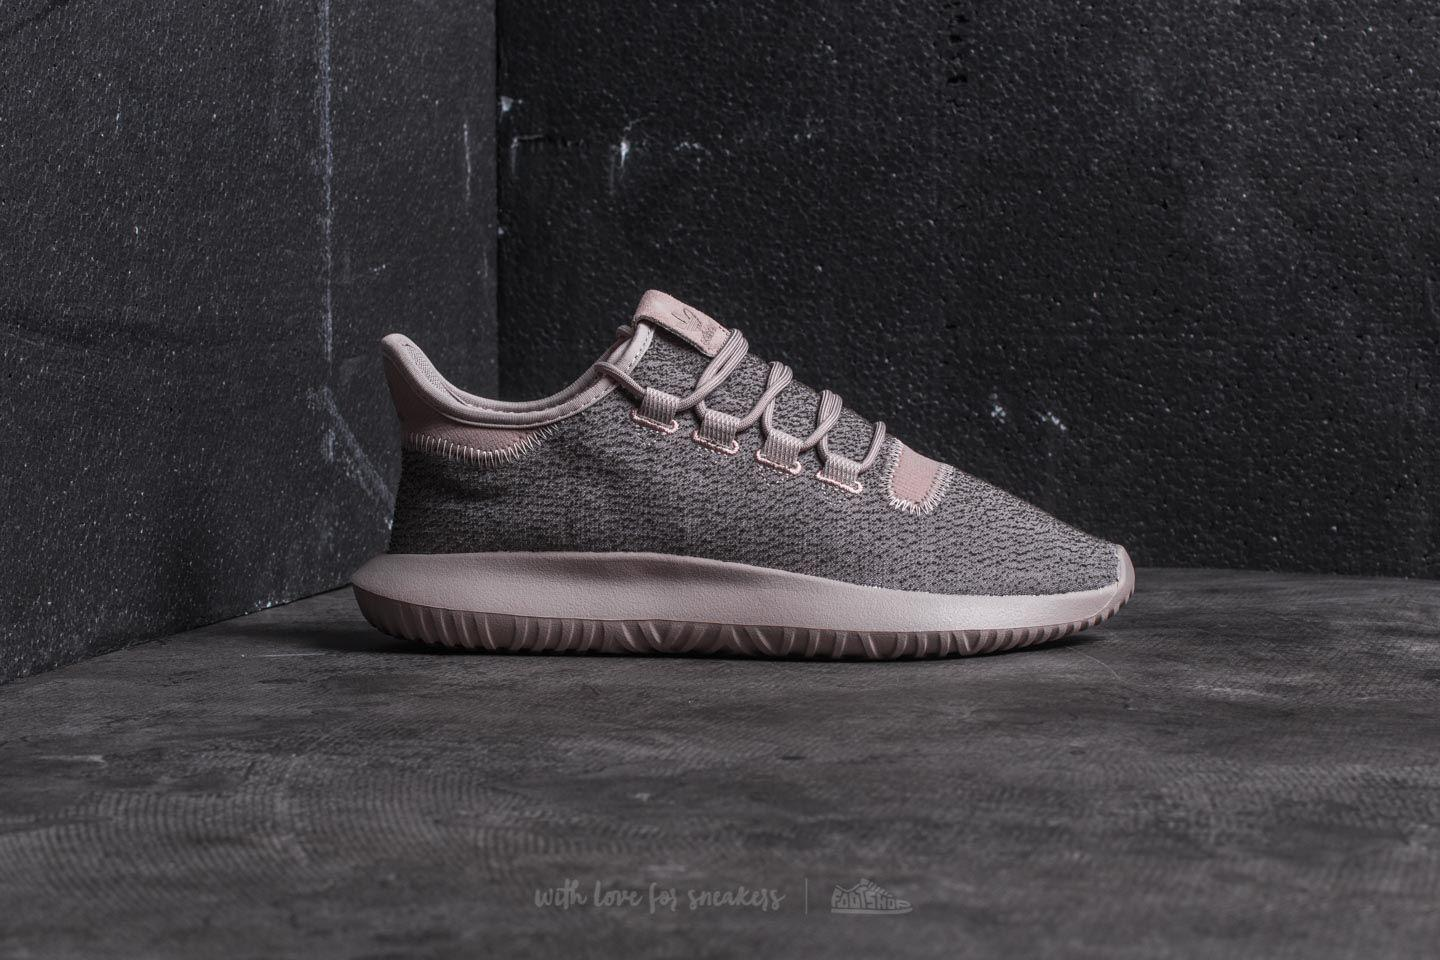 3140ddcce67e ... official view fullscreen c0c71 81192 official view fullscreen c0c71  81192  closeout womens adidas tubular shadow w pink grey ...